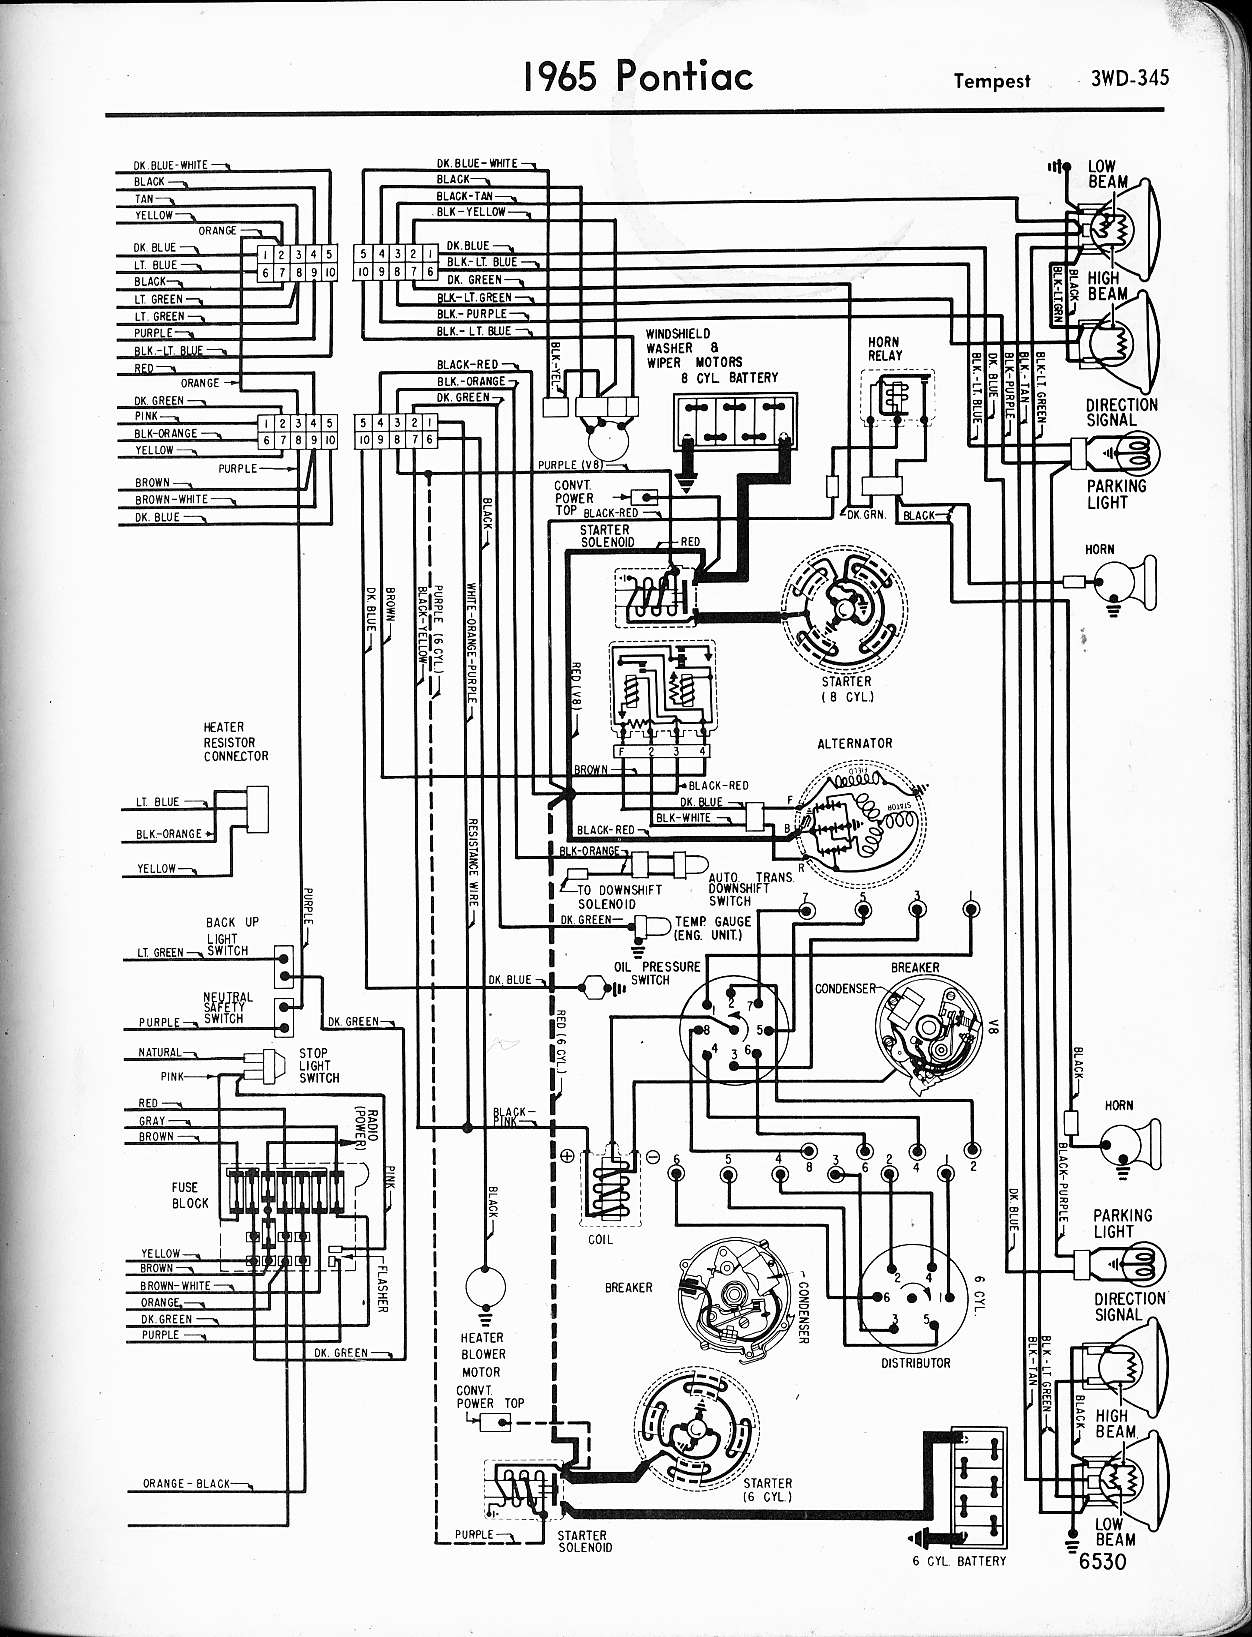 wallace racing wiring diagrams rh wallaceracing com 1964 pontiac gto wiring diagram 1965 pontiac wiring diagram